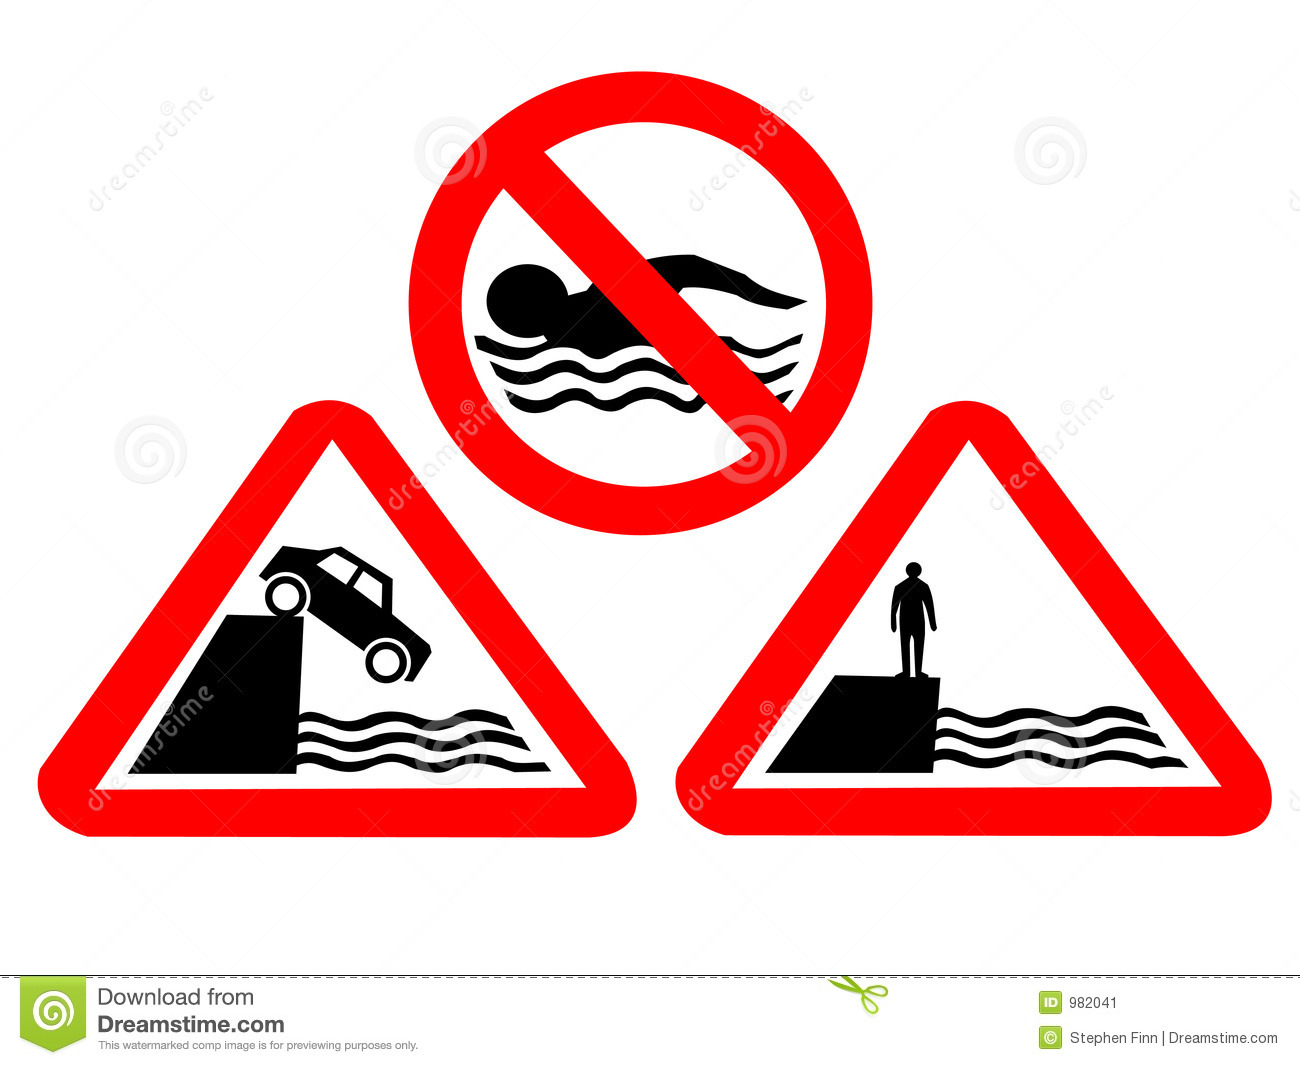 Water Hazard Signs Royalty Free Stock Photos.